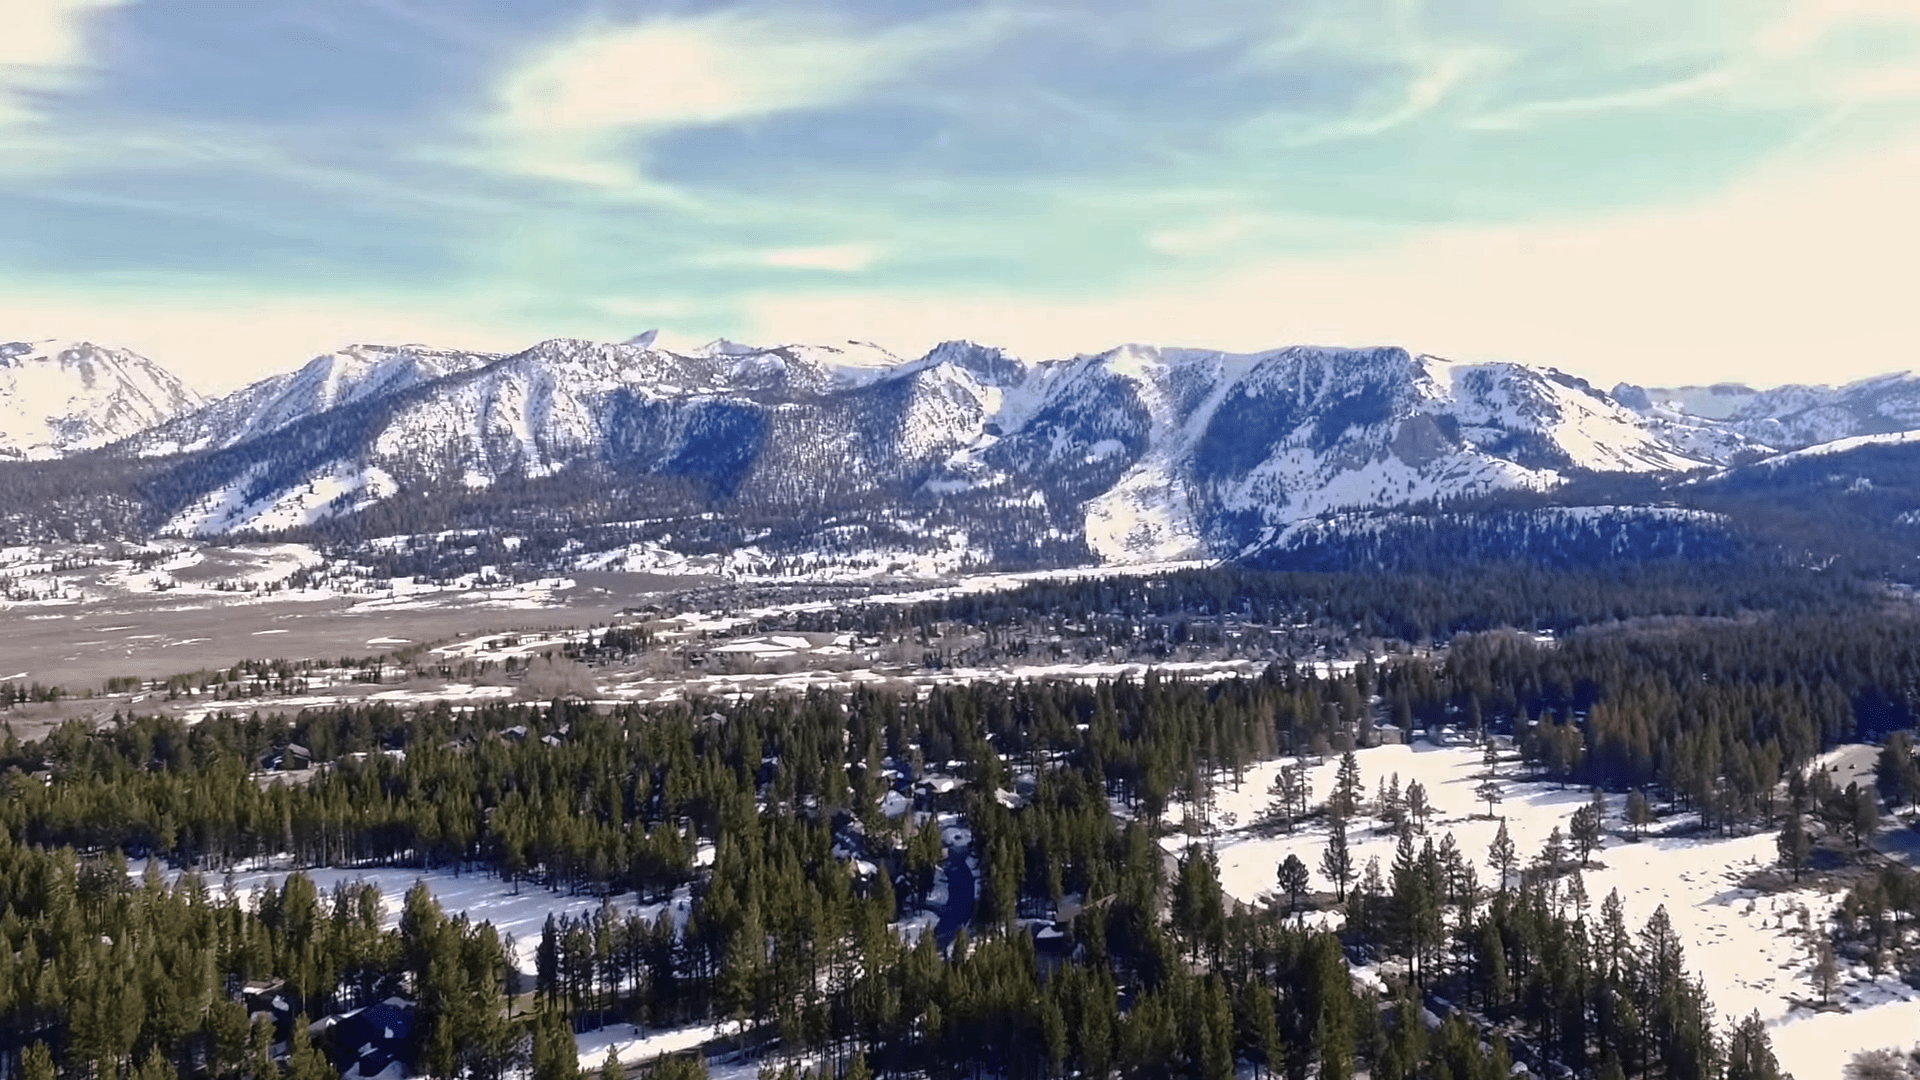 Take a Roadtrip from Los Angeles to Mammoth Lakes!